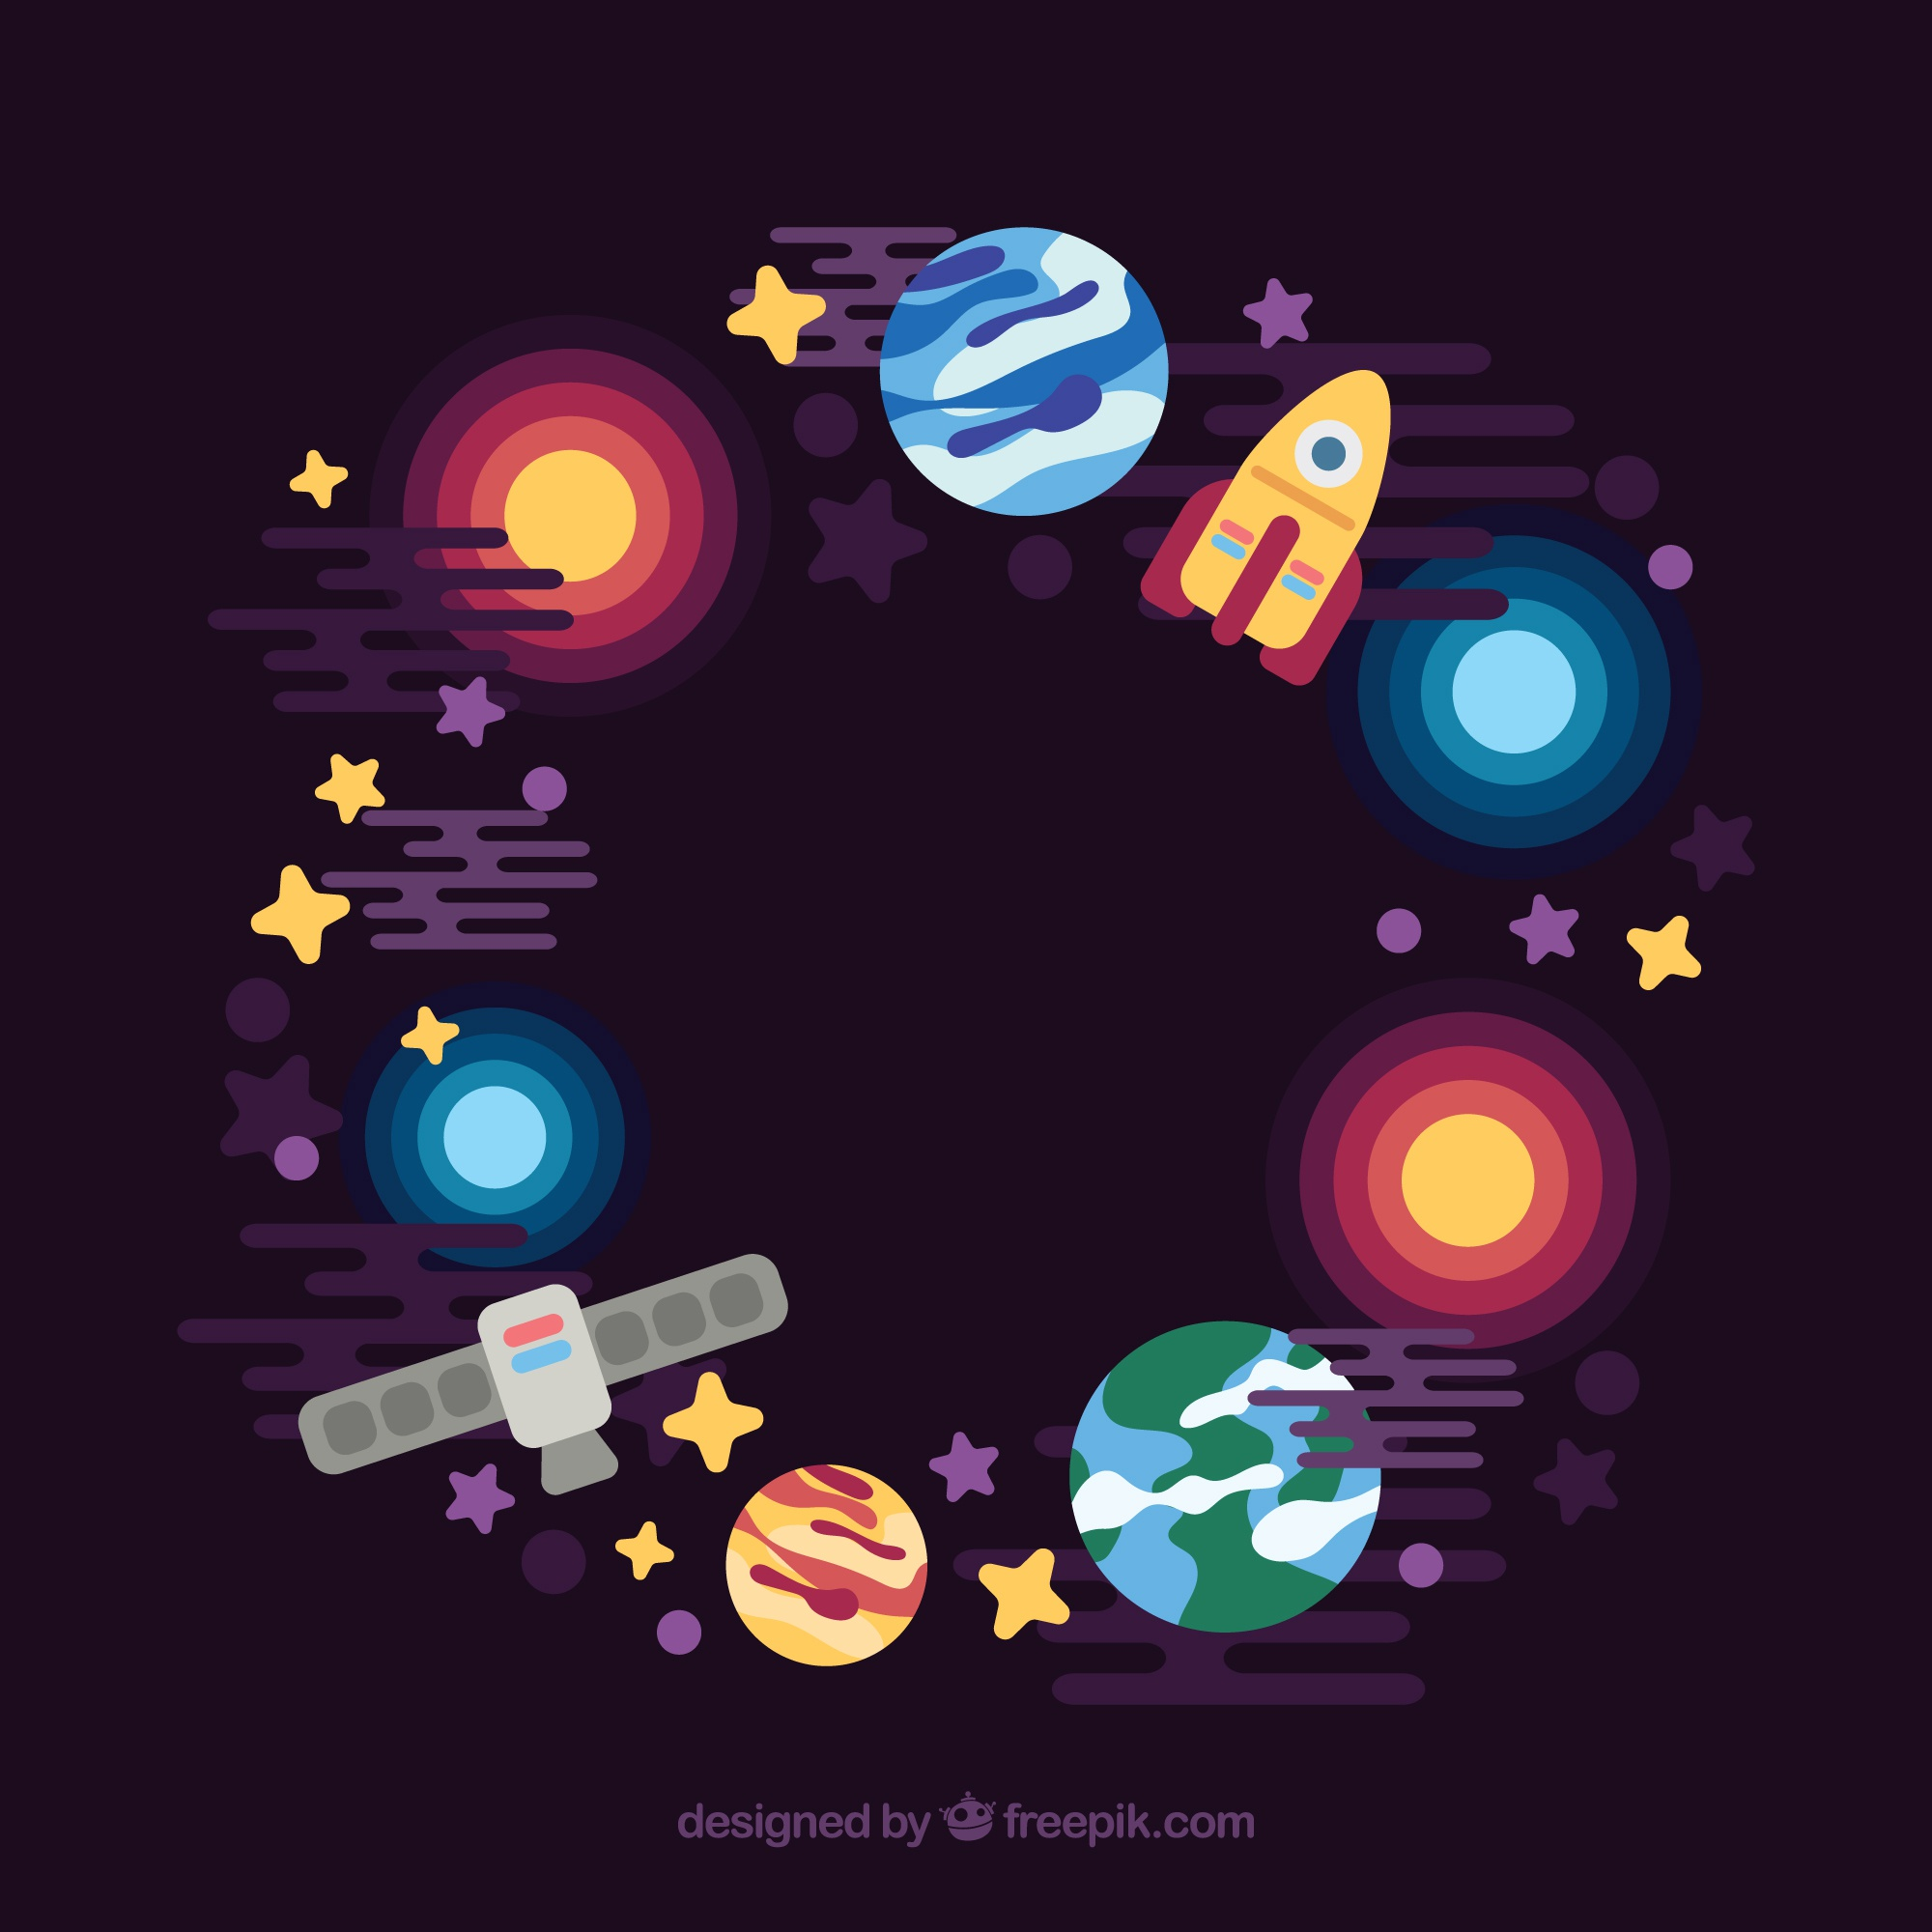 Circle background made of space elements